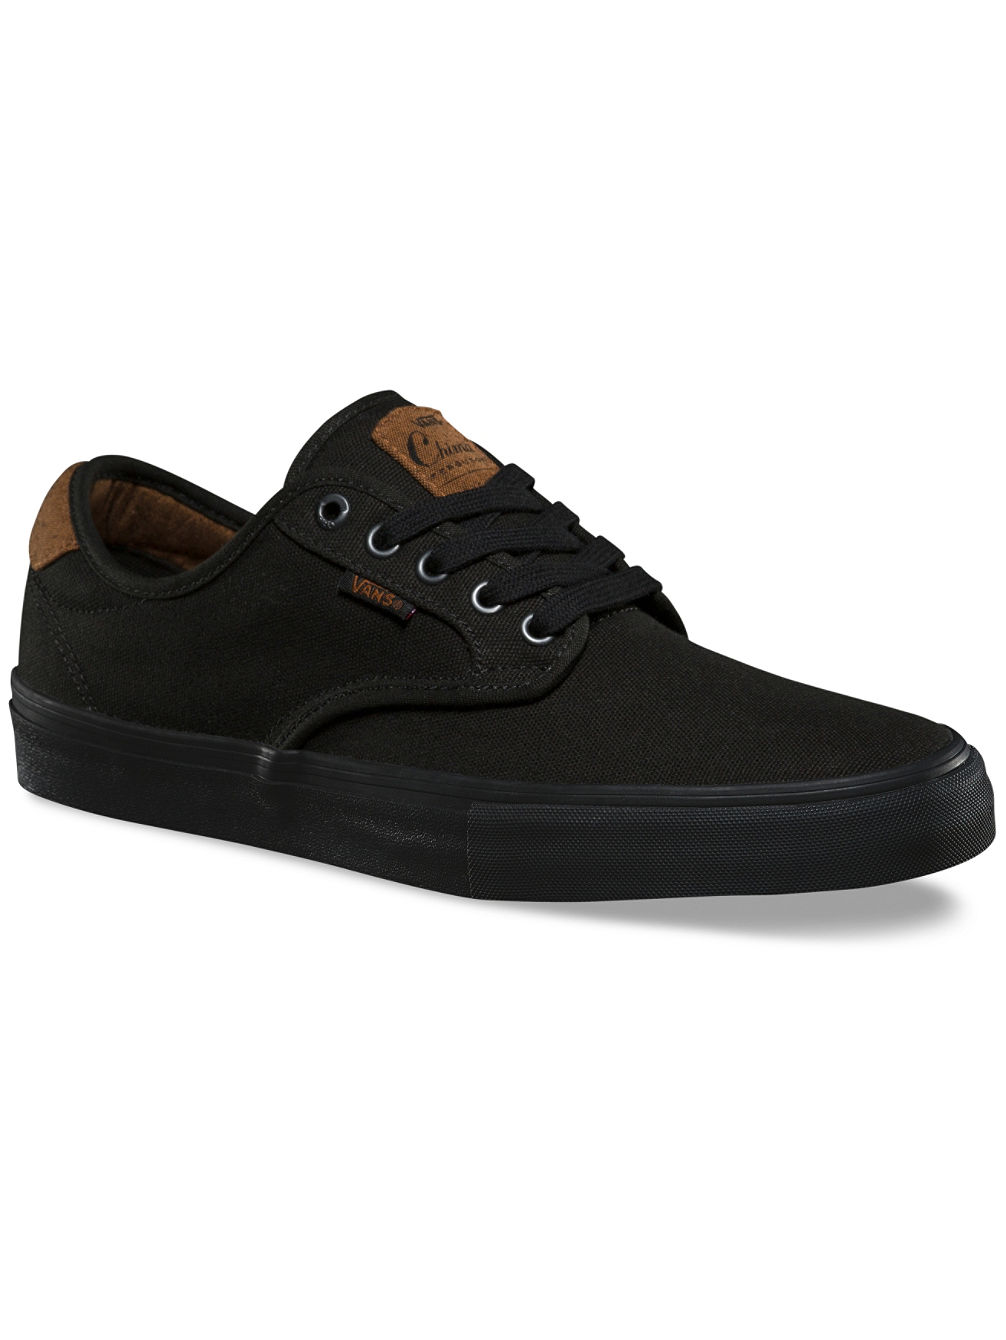 Chima Ferguson Pro Skate Shoes